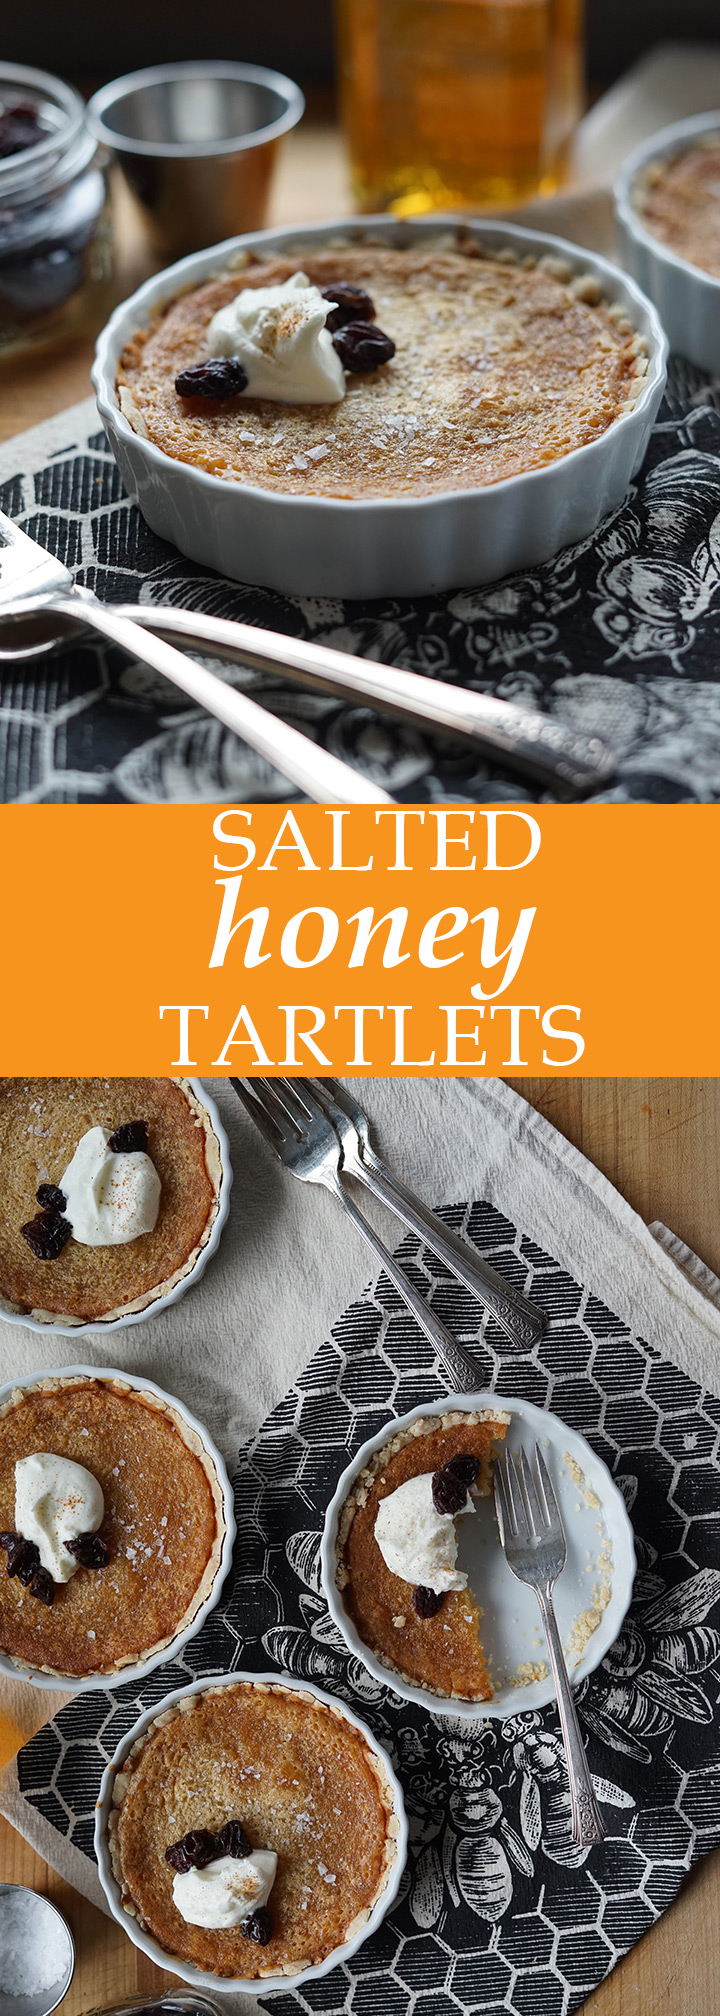 Salted Honey Tartlets | www.thetableofcontents.co